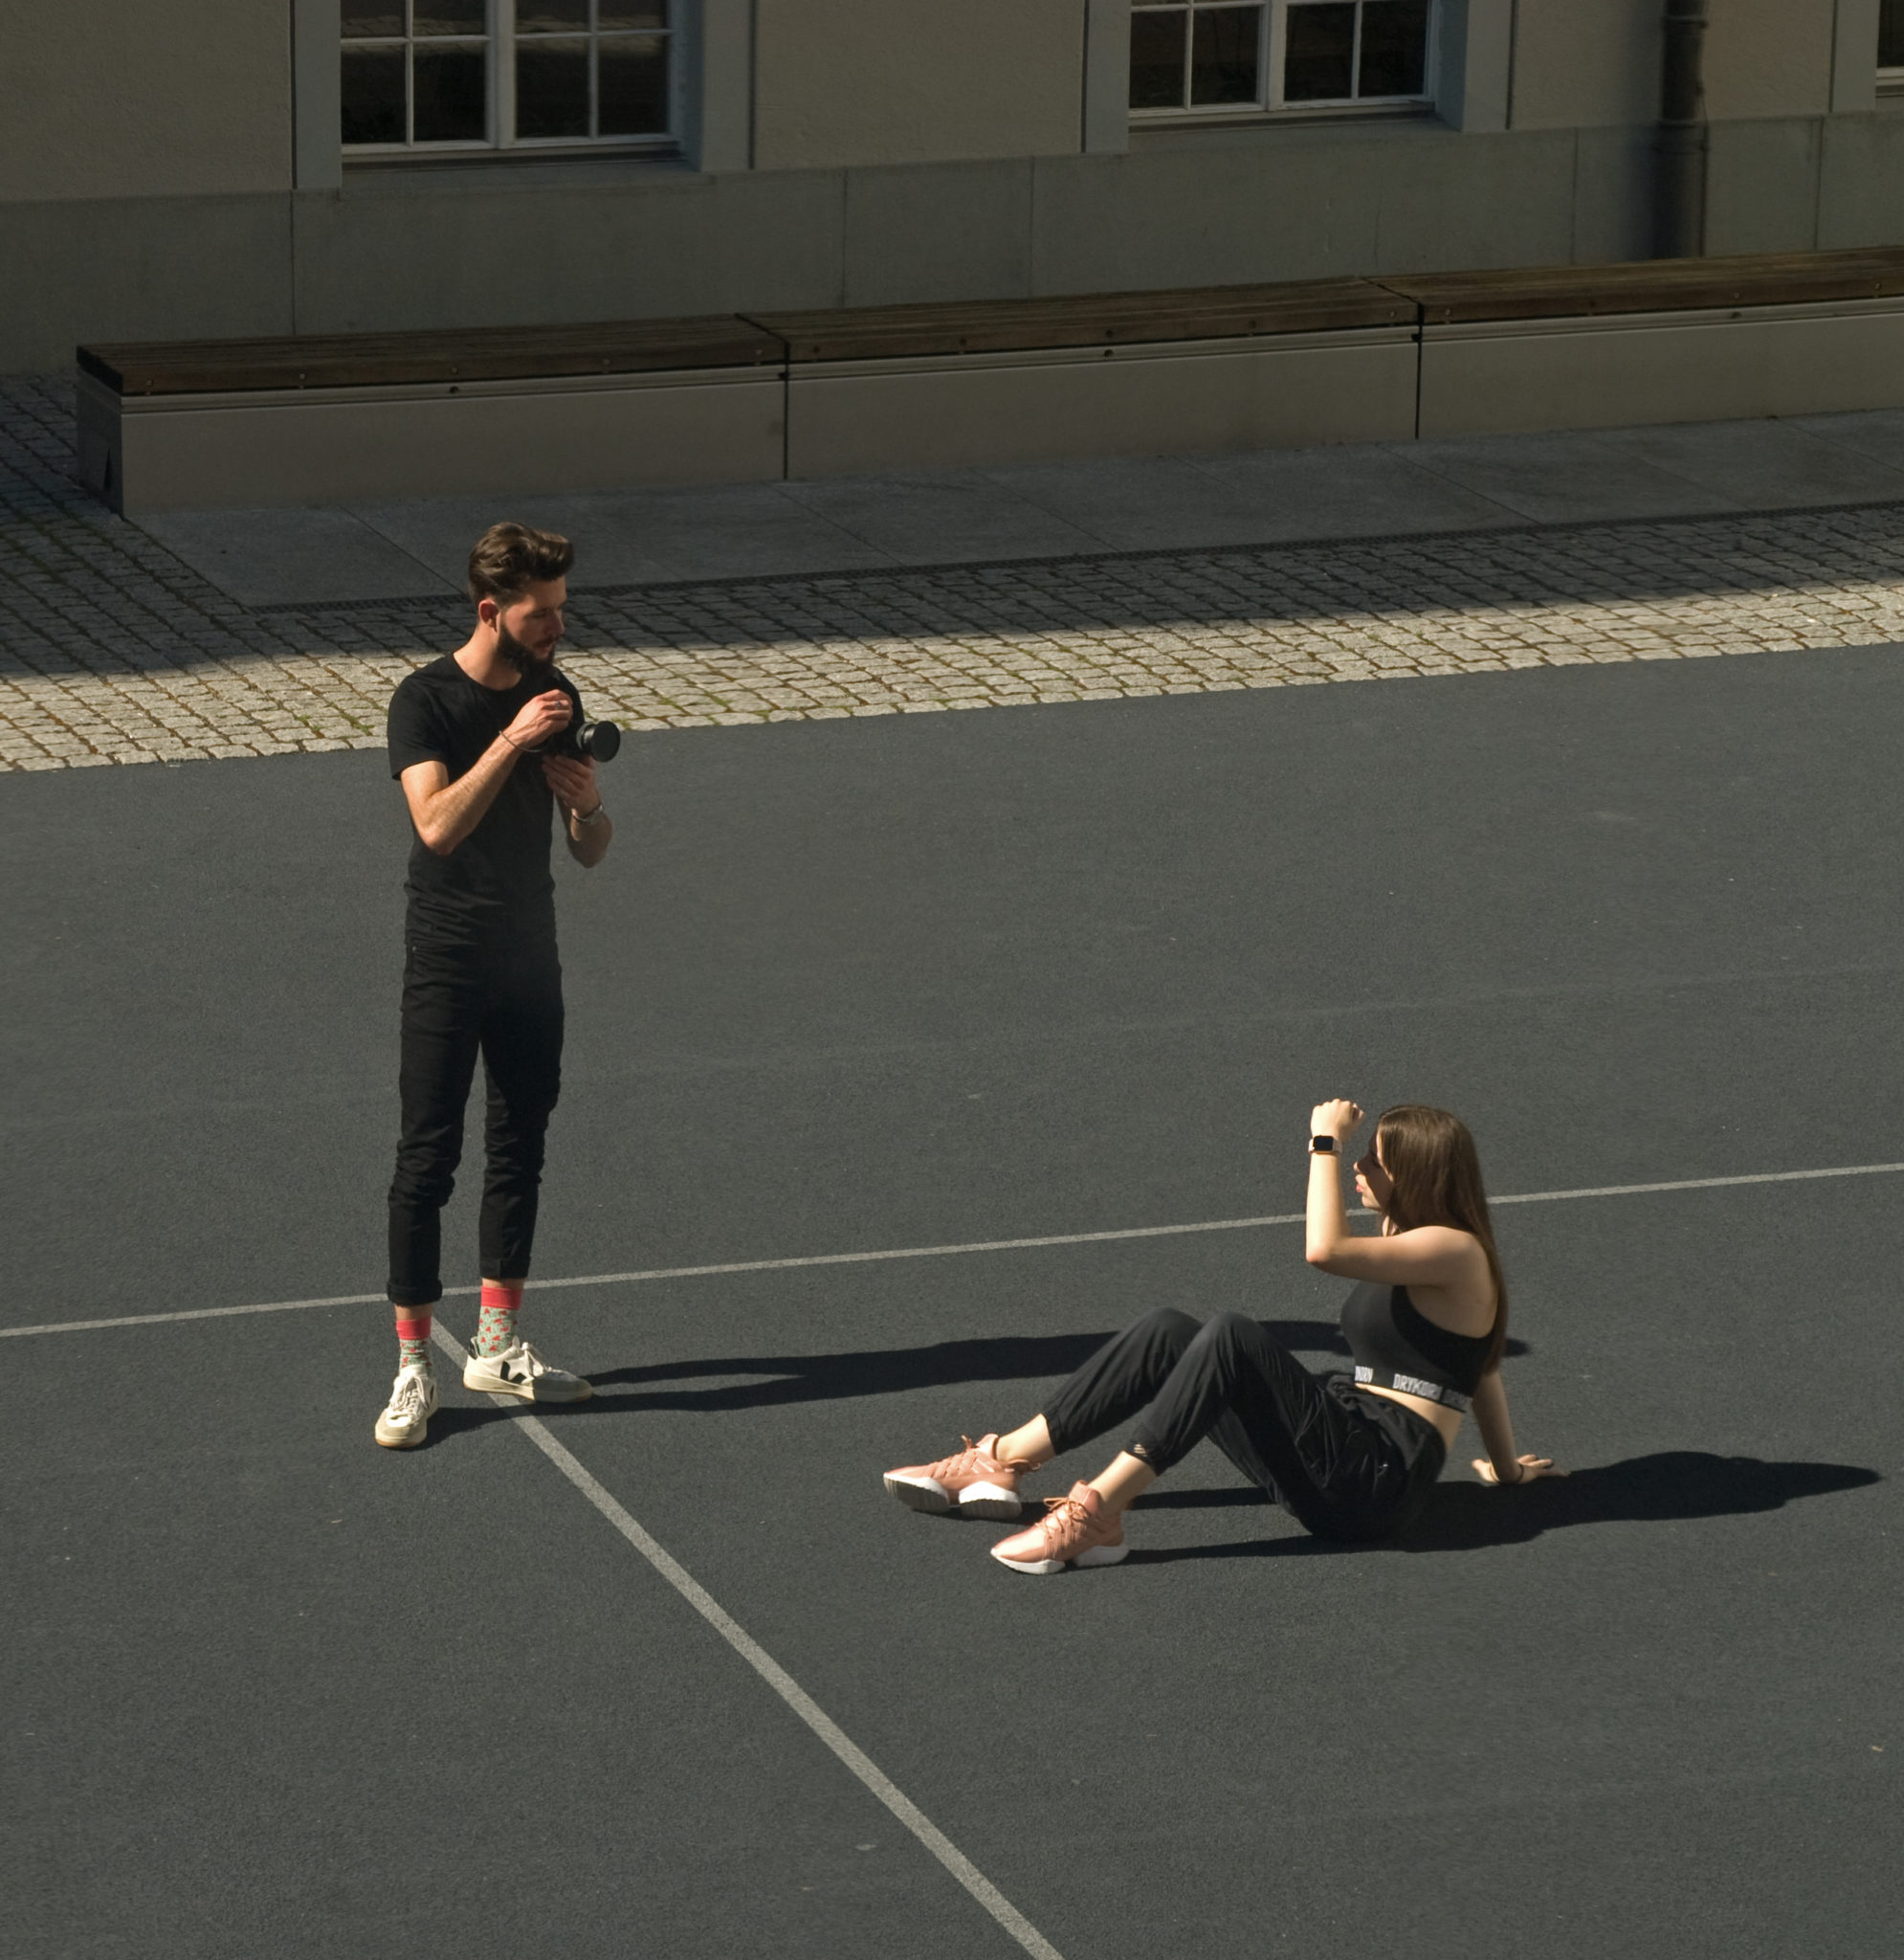 A fotograph and a model